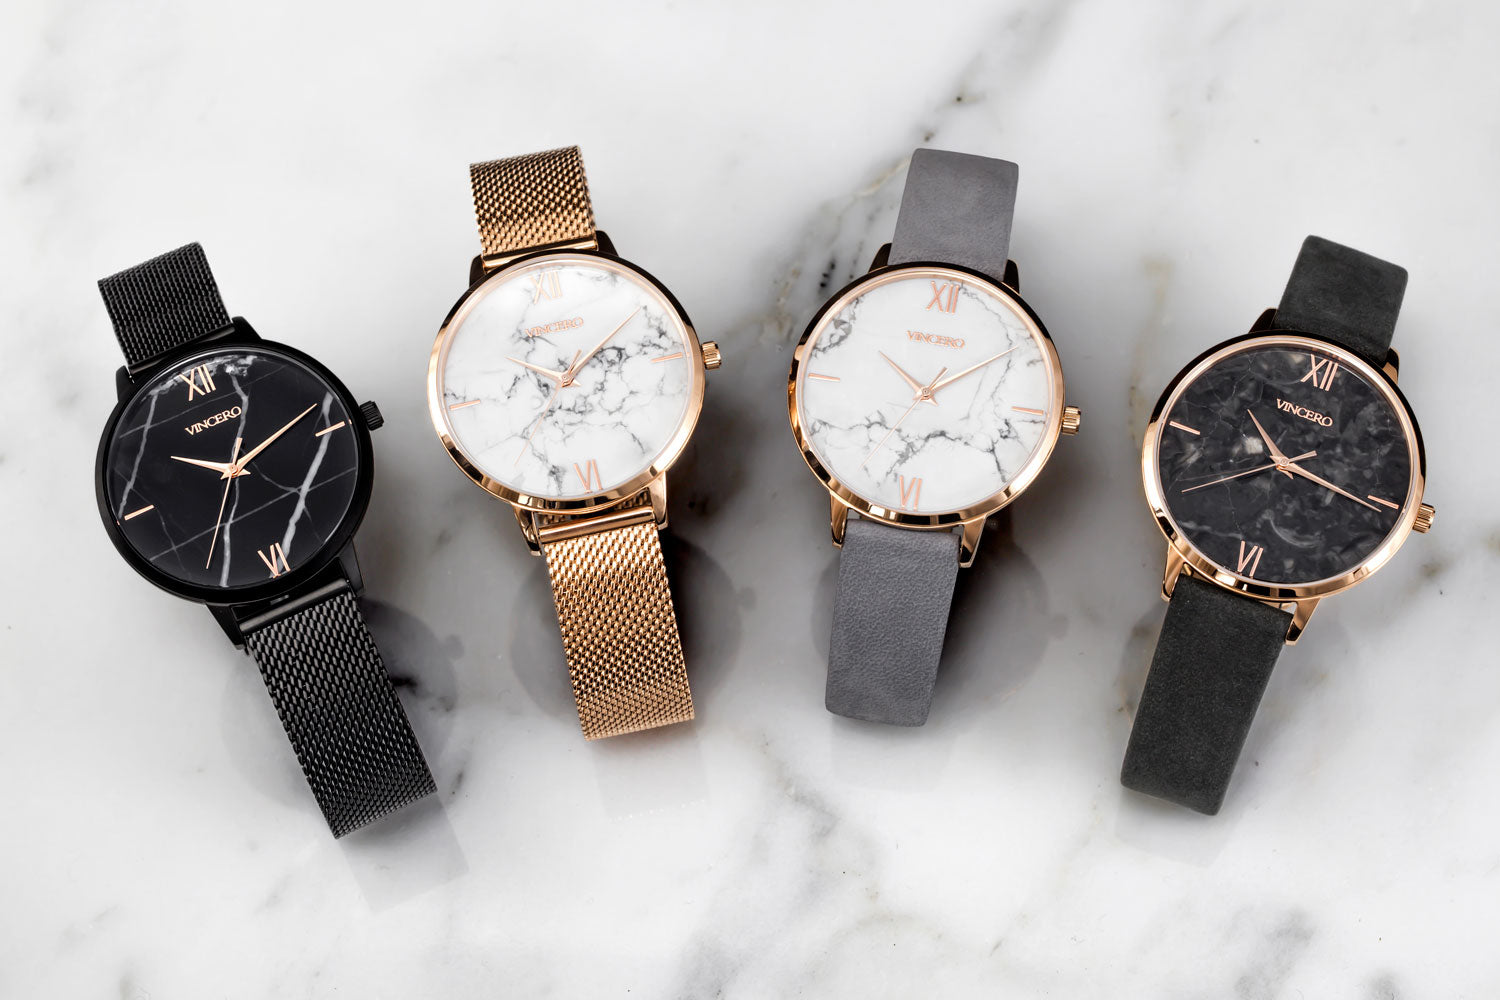 Four marble faced watches with mesh and leather straps laying in white marble